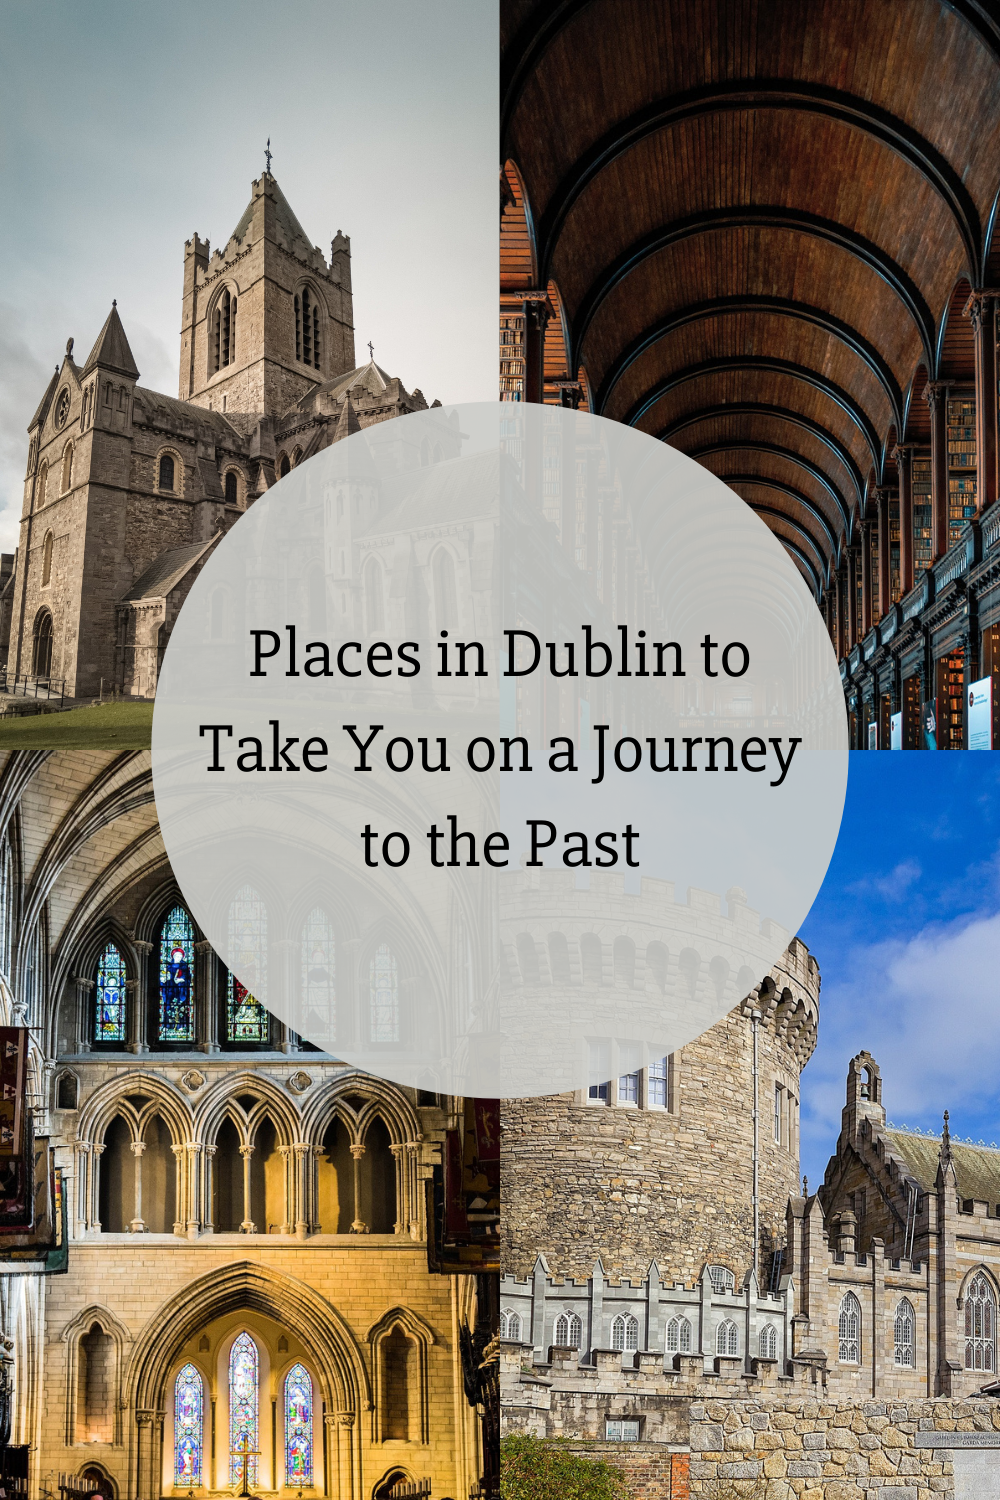 Places in Dublin to Take You on a Journey to the Past